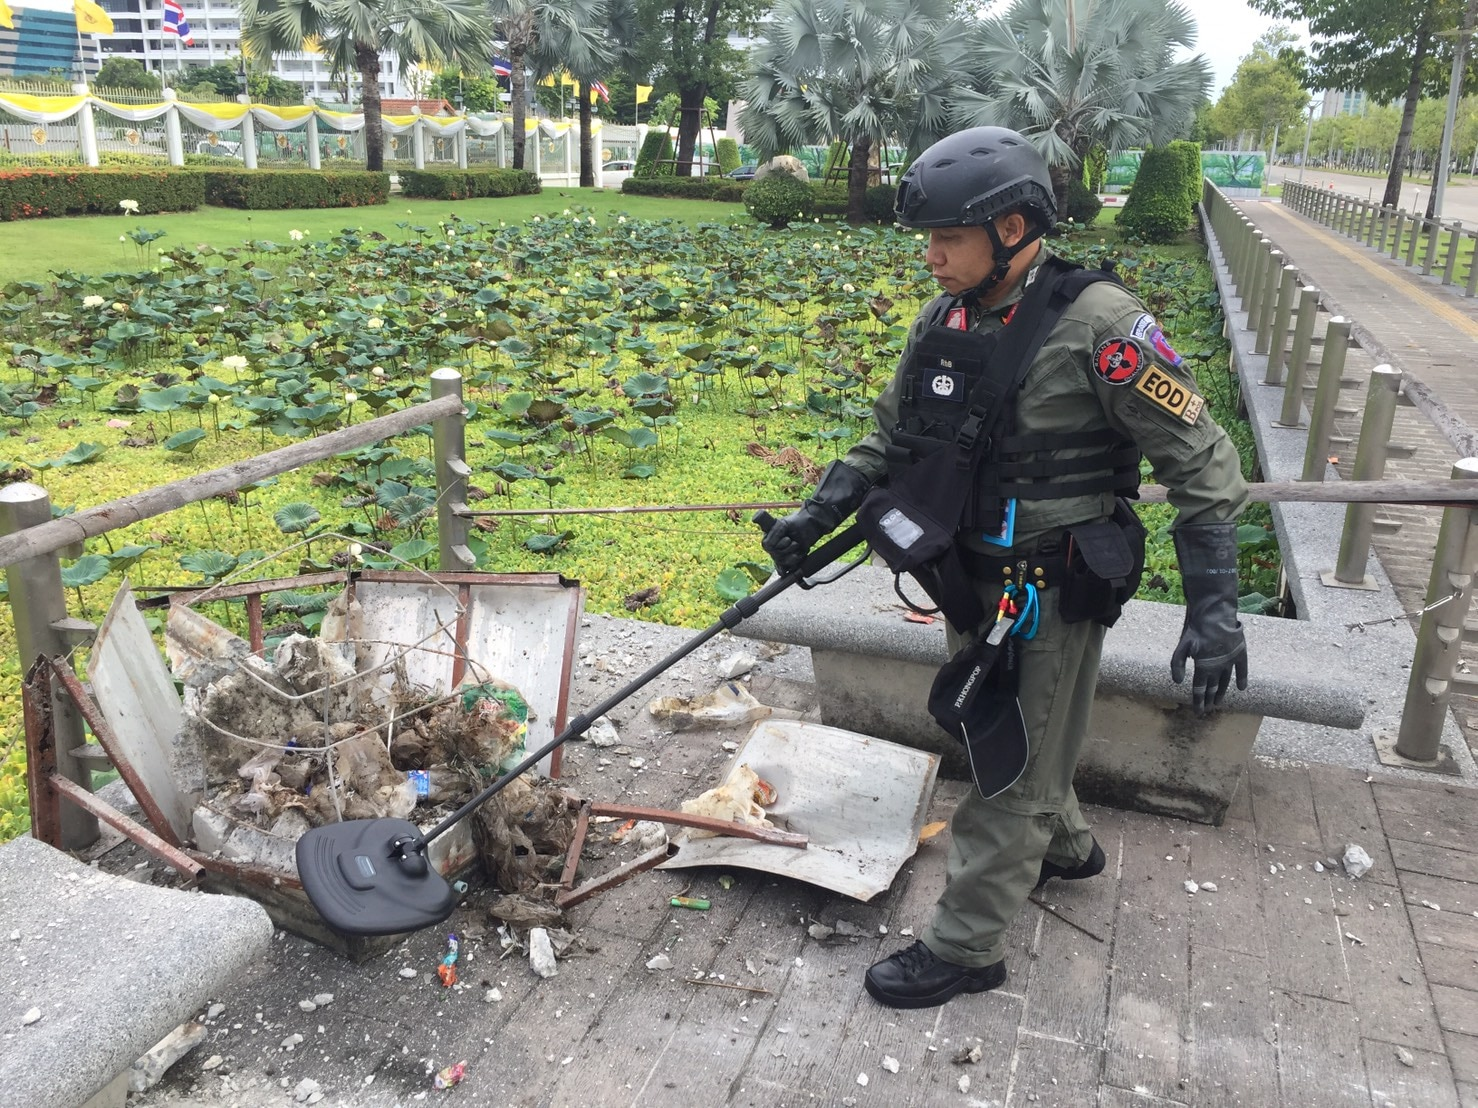 An ATA-trained bomb tech with the Royal Thai Police Metropolitan Police Bureau uses a nonlinear junction detector to scan for components of a detonated IED at a blast site in Bangkok on August 2, 2019. (Photo courtesy of Royal Thai Police)